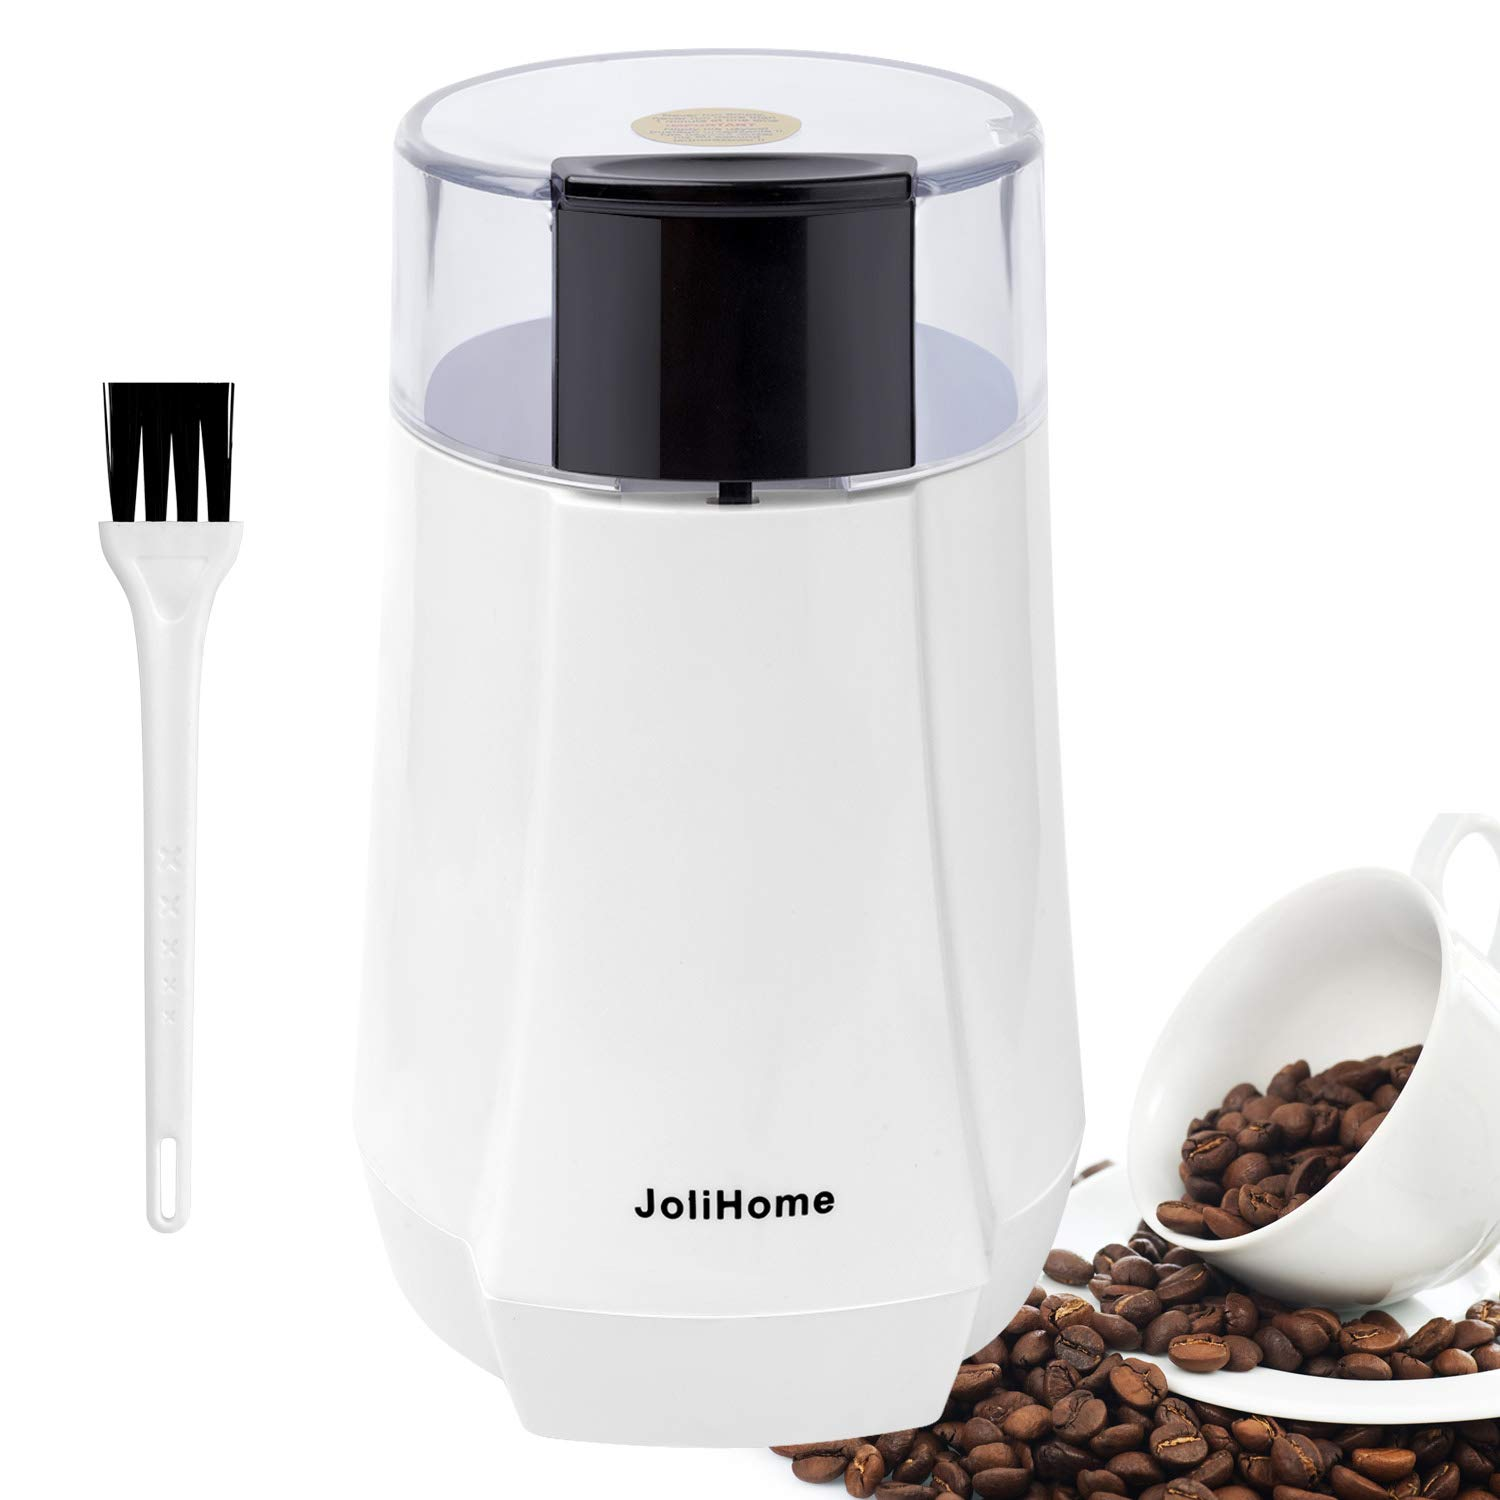 JoliHome Electric Coffee Grinder, Multifunctional Stainless Steel Blade Spice Grinder Fast Grinding Coffee Beans, Nuts, Grains, 2.5oz/70g, 150W. Cleaning Brush Included (White)